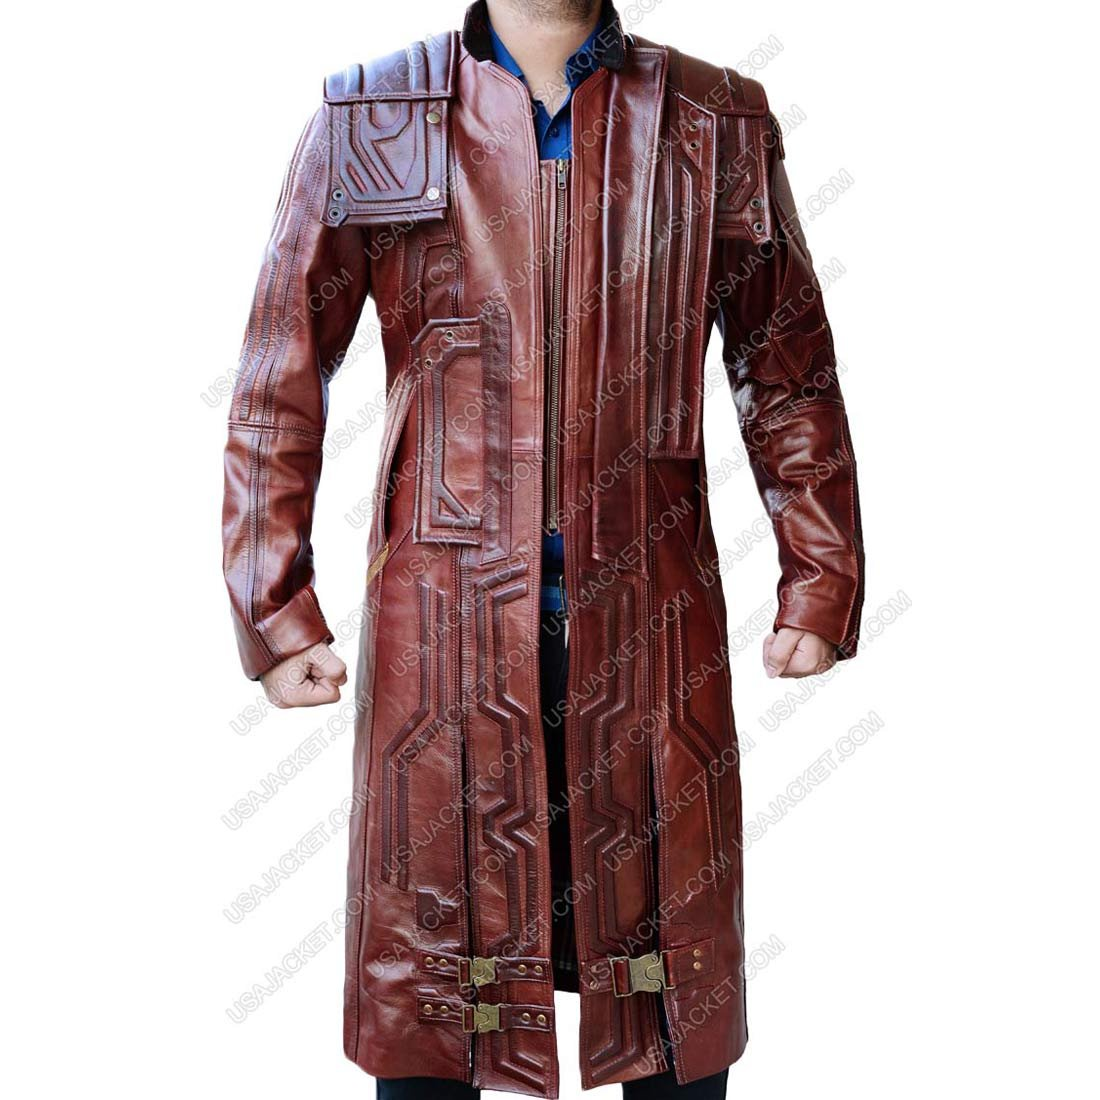 Star Lord Jacket Men's Vol 2 Genuine Real Leather Guardians of the Galaxy Coat The Custom Jacket